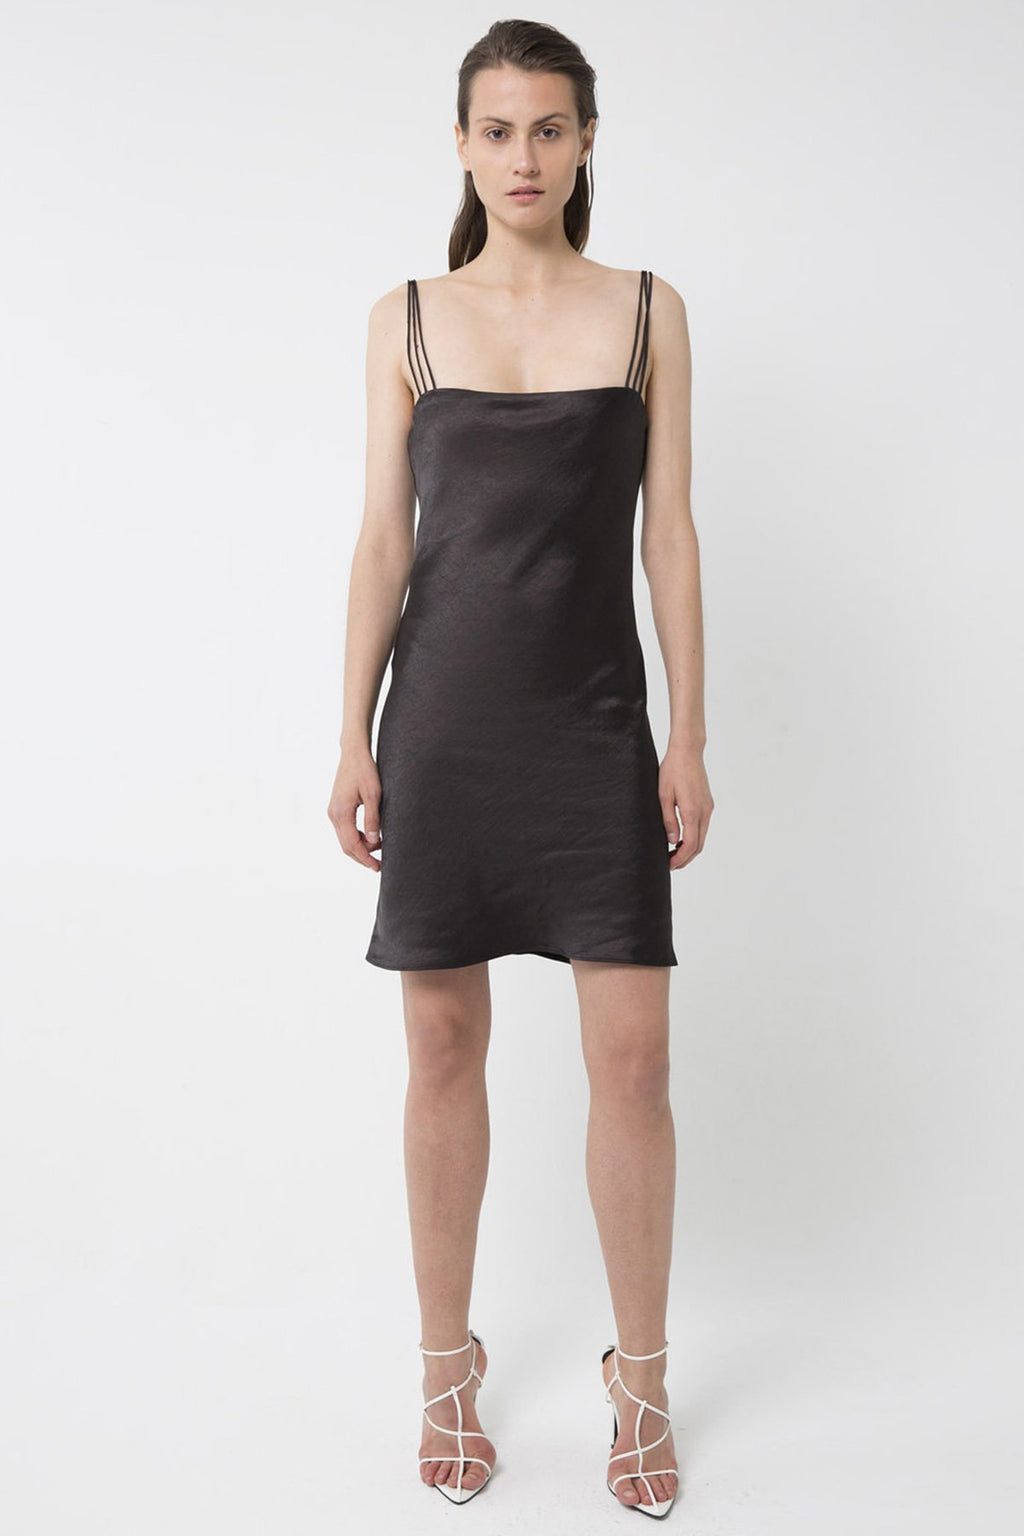 UNIKONCEPT lifestyle boutique: Model is wearing black, satin, mini third form slip dress. the 90's bias mini slip dress comes with 3 strap detail and square neckline.